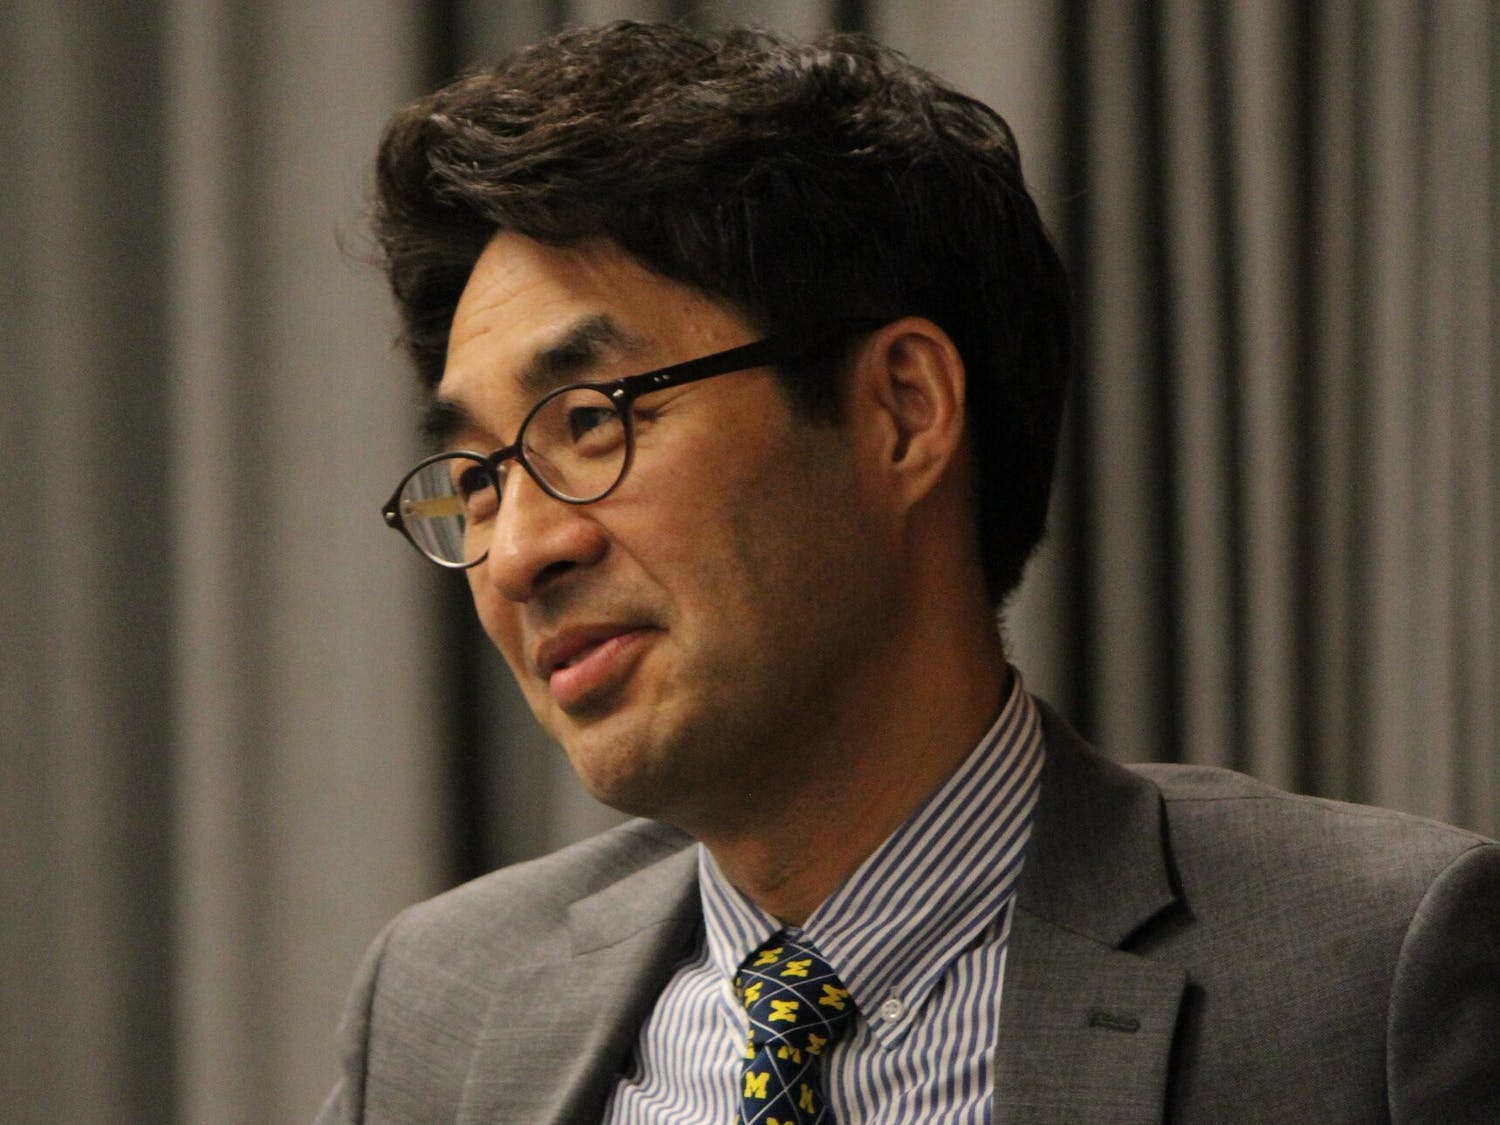 Nojin Kwak will inherit the position from Interim Vice Provost for International Education John Wood, who has served in the role since 2018.